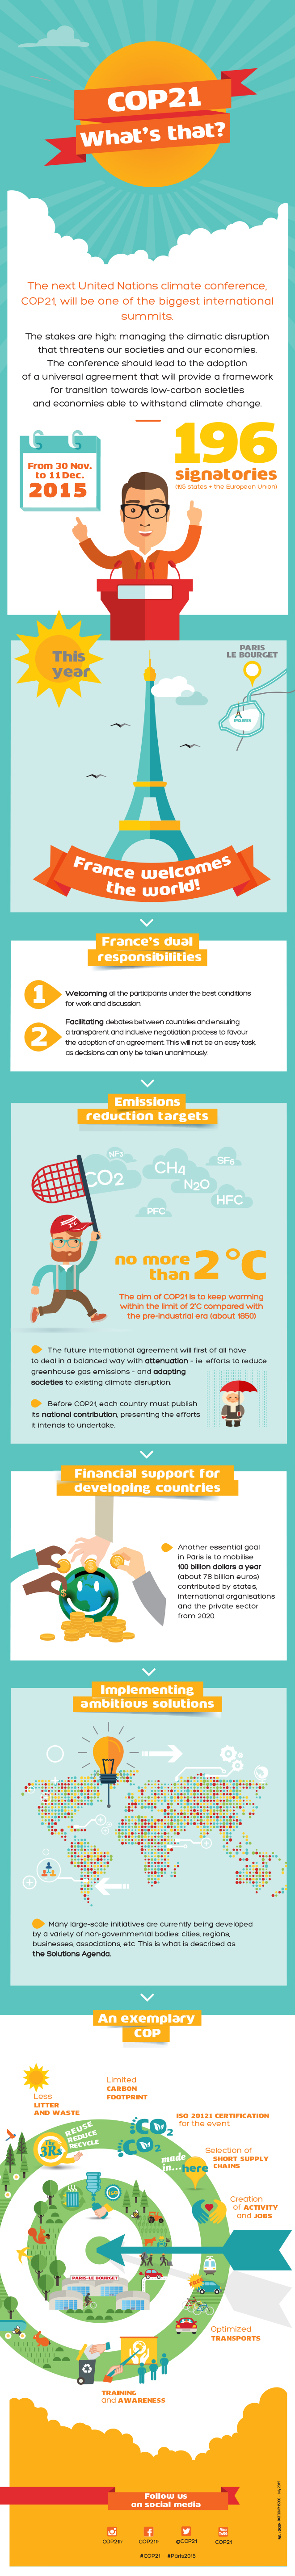 COP21 Explained - Infographic